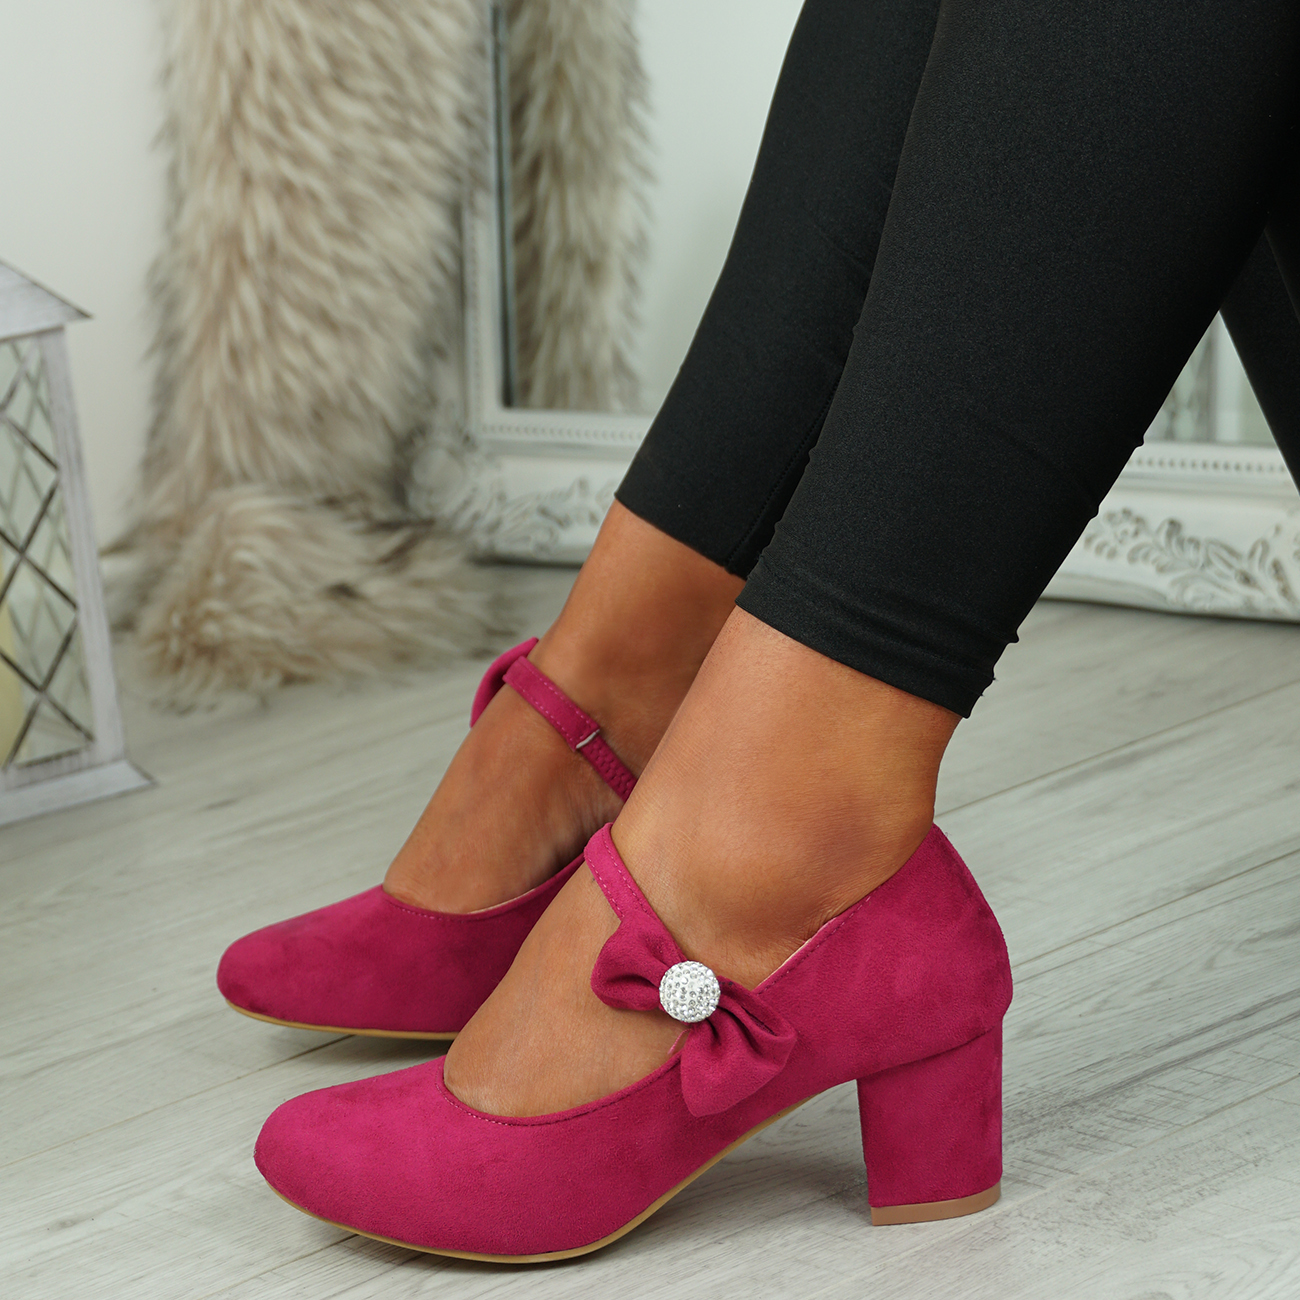 NEW-WOMENS-BLOCK-HEEL-PUMPS-BOW-BUCKLE-STRAP-ROUNDED-TOE-CASUAL-SHOES-SIZE thumbnail 15